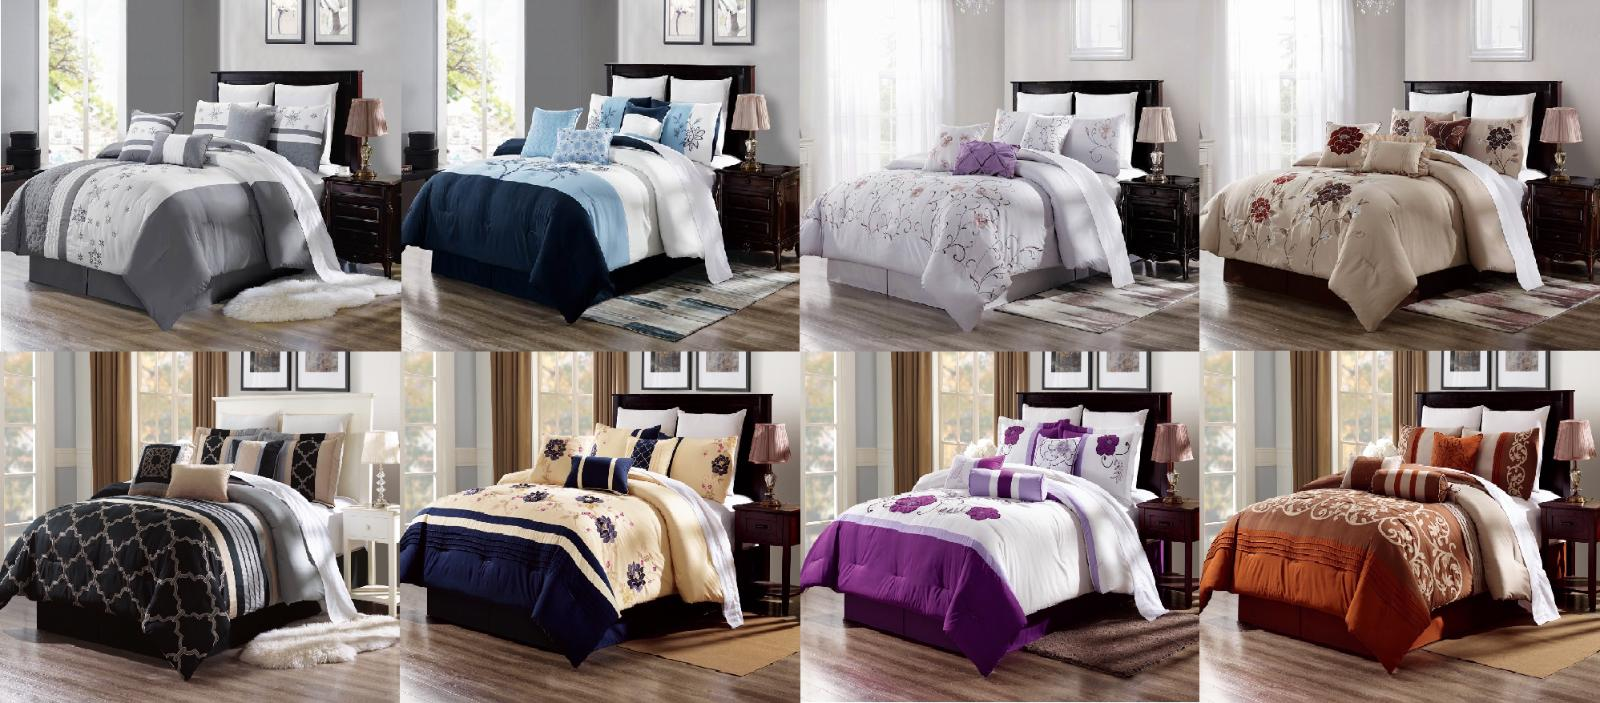 3PC DUVET COMFORTER COVER SET W/ SHAMS